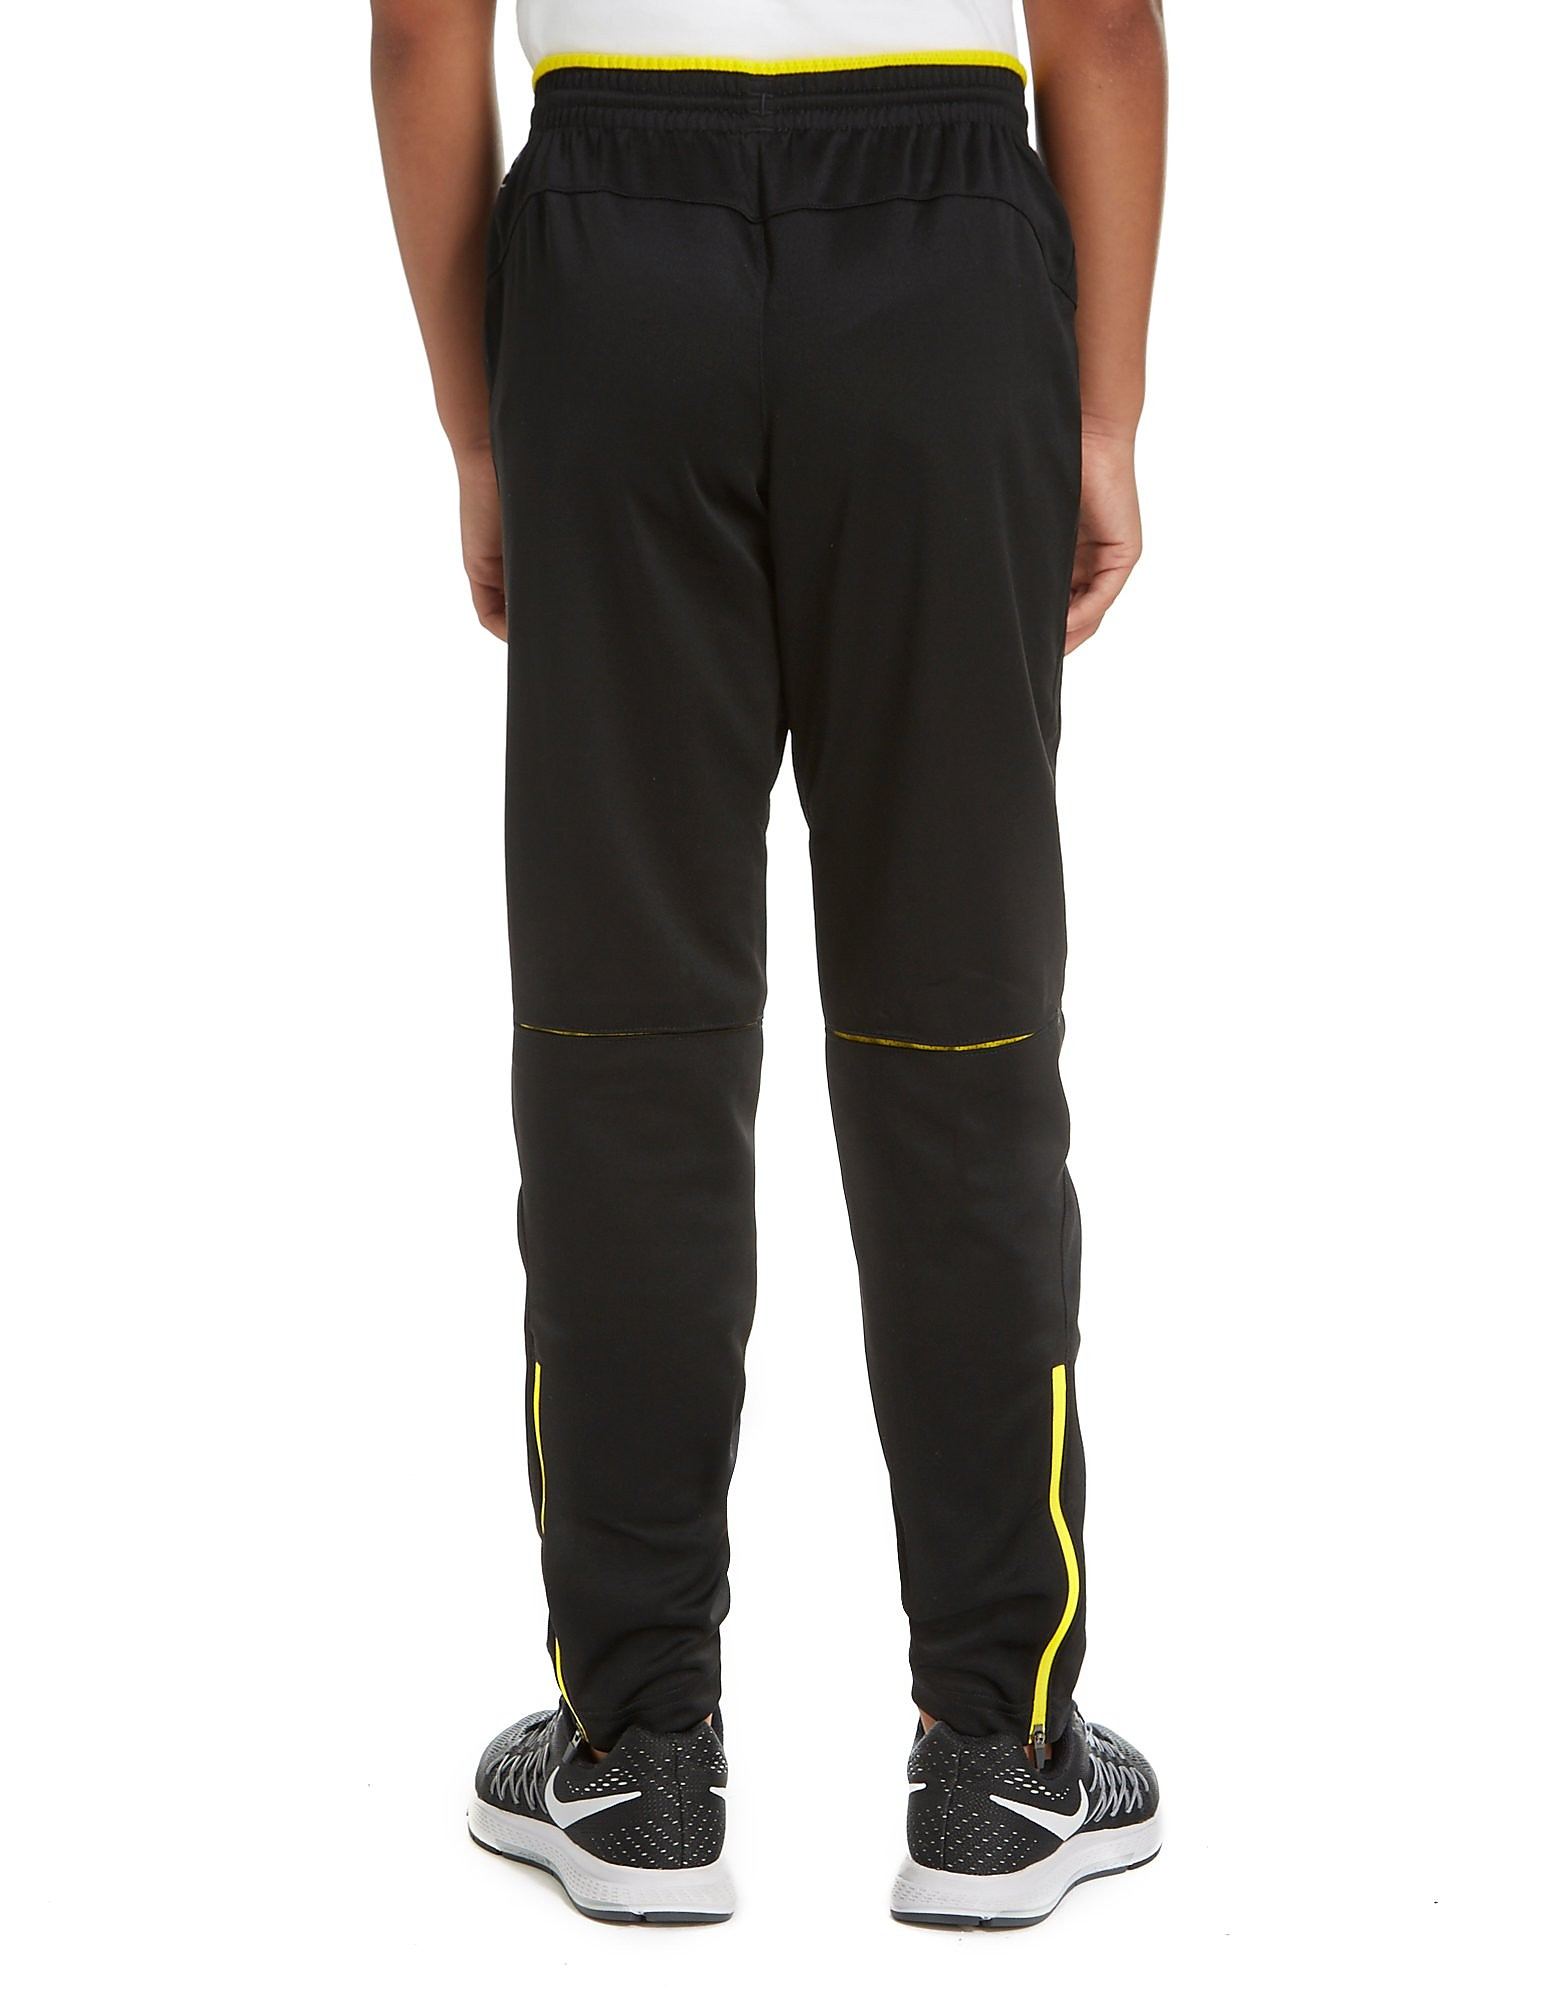 PUMA Borussia Dortmund 2017 Pants Junior